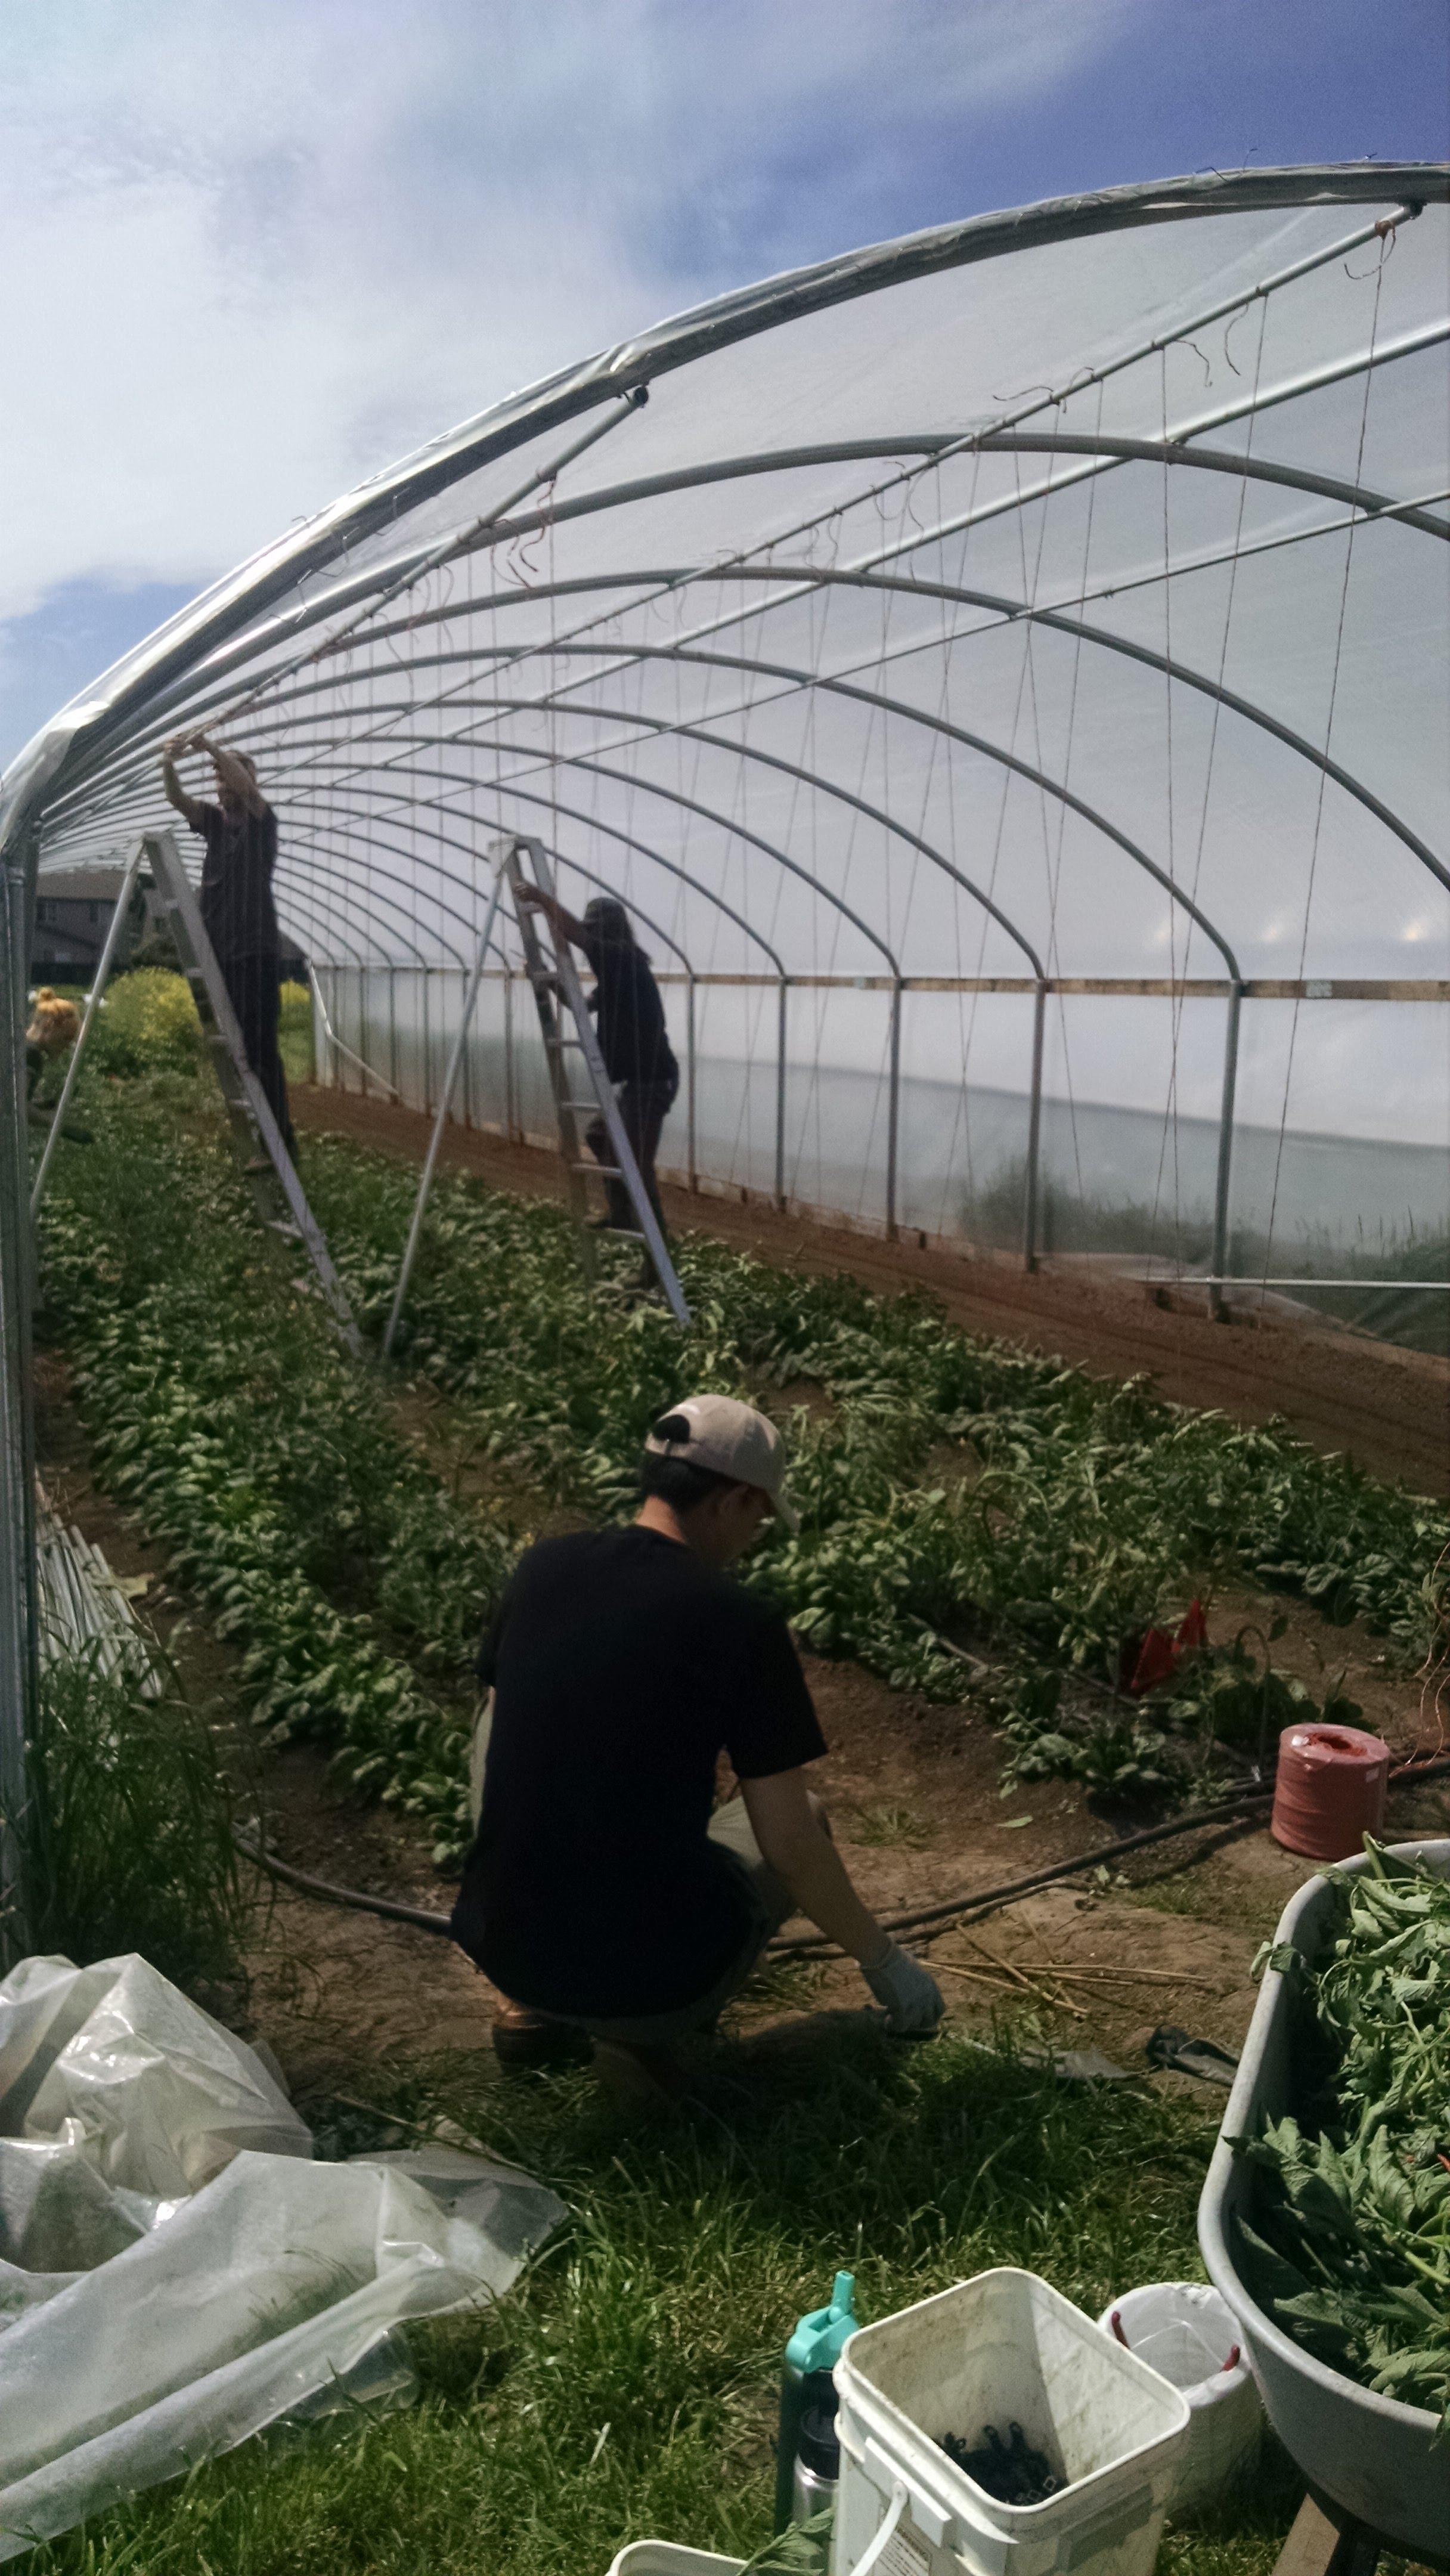 Hands tying up tomatoes, measuring out twine, clipping up plants